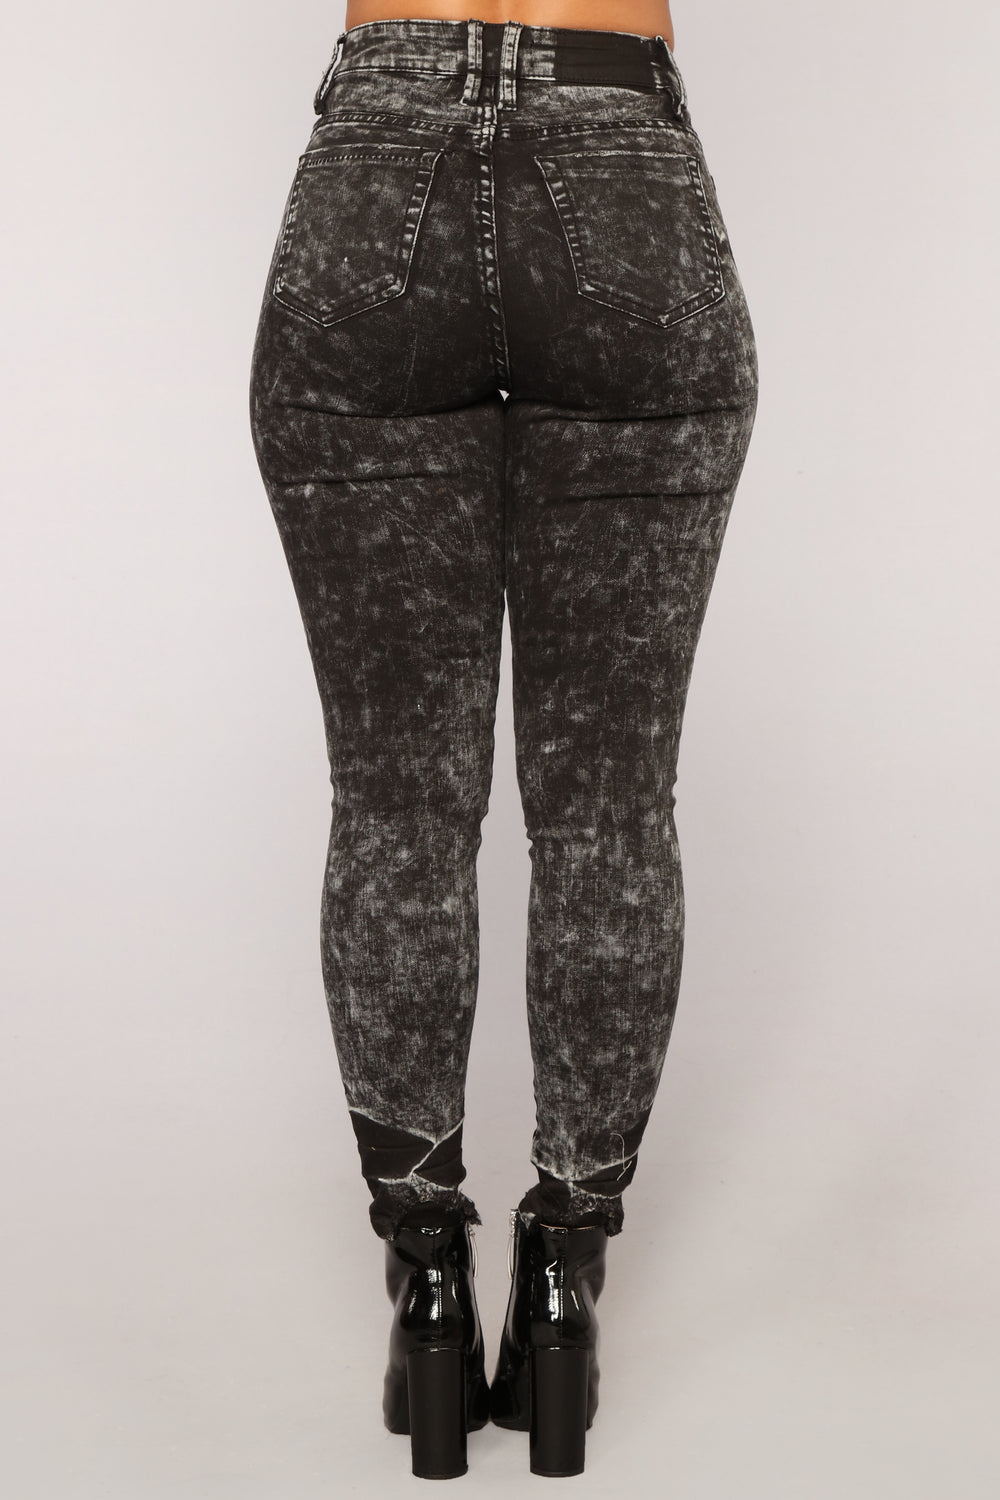 Quest Love Skinny Jeans - Acid Wash Black